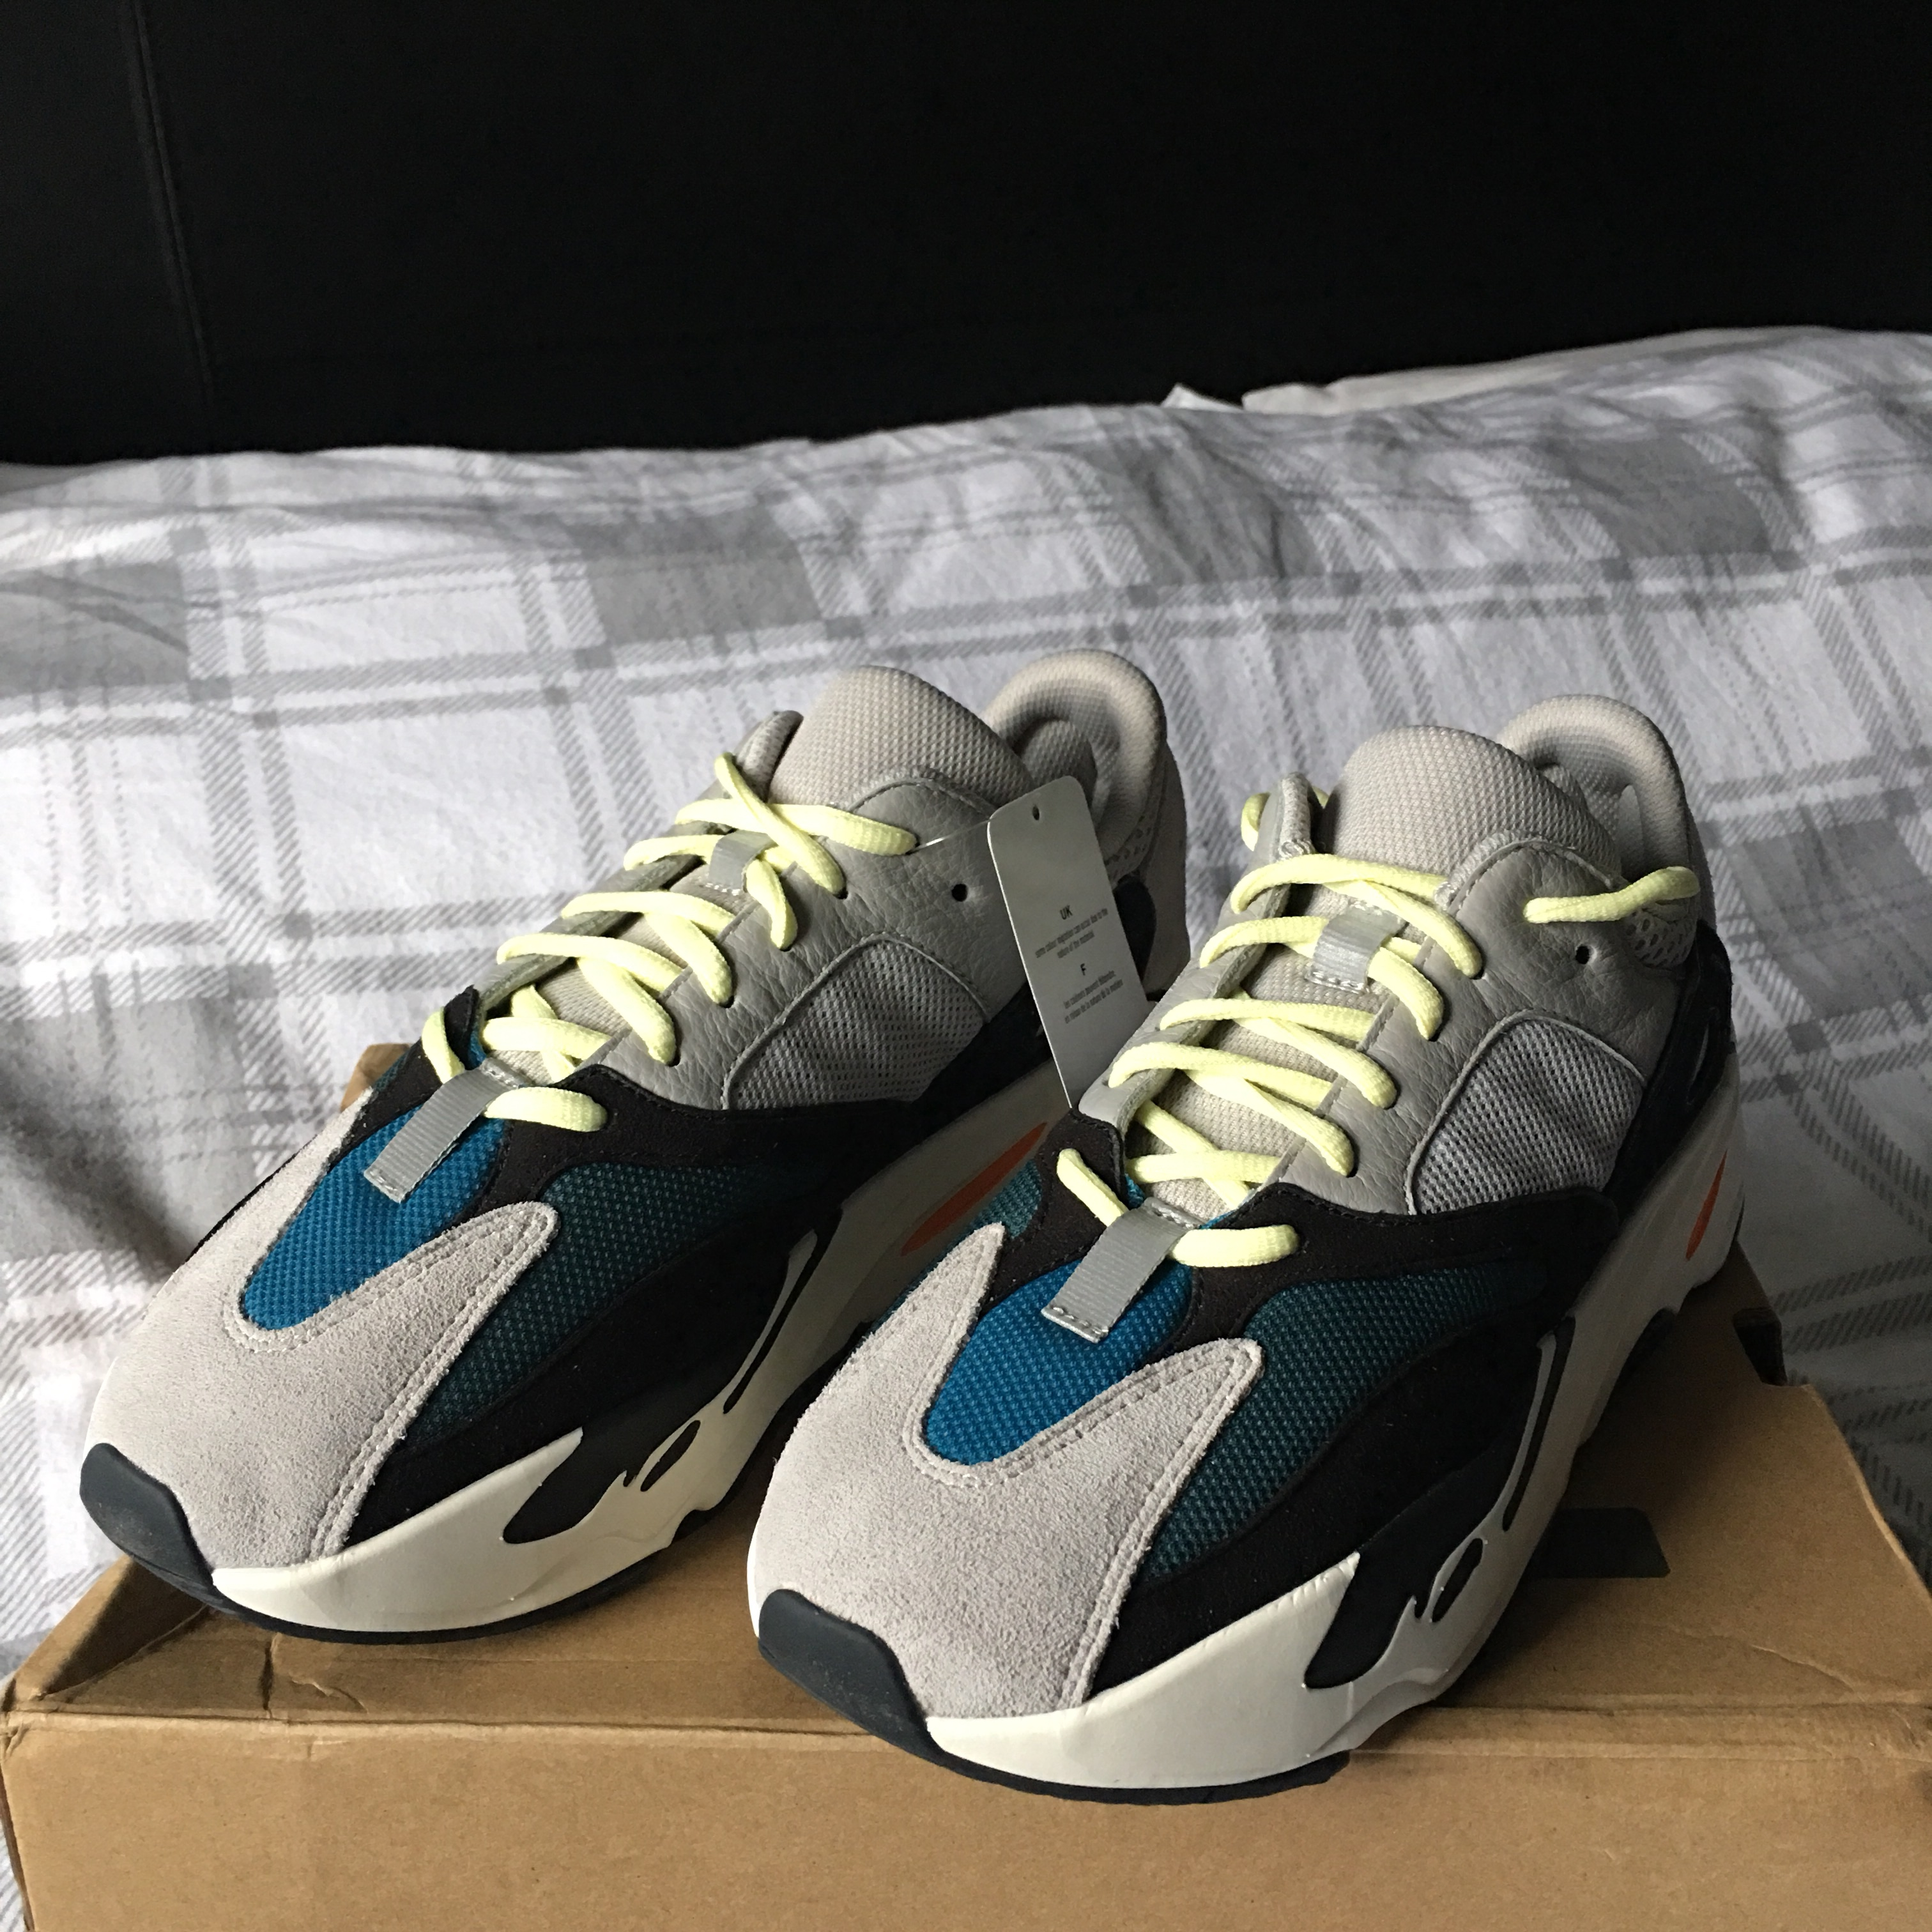 new arrival ff0e4 e7ca7 Adidas Yeezy Boost 700 Wave Runners New With Box... - Depop